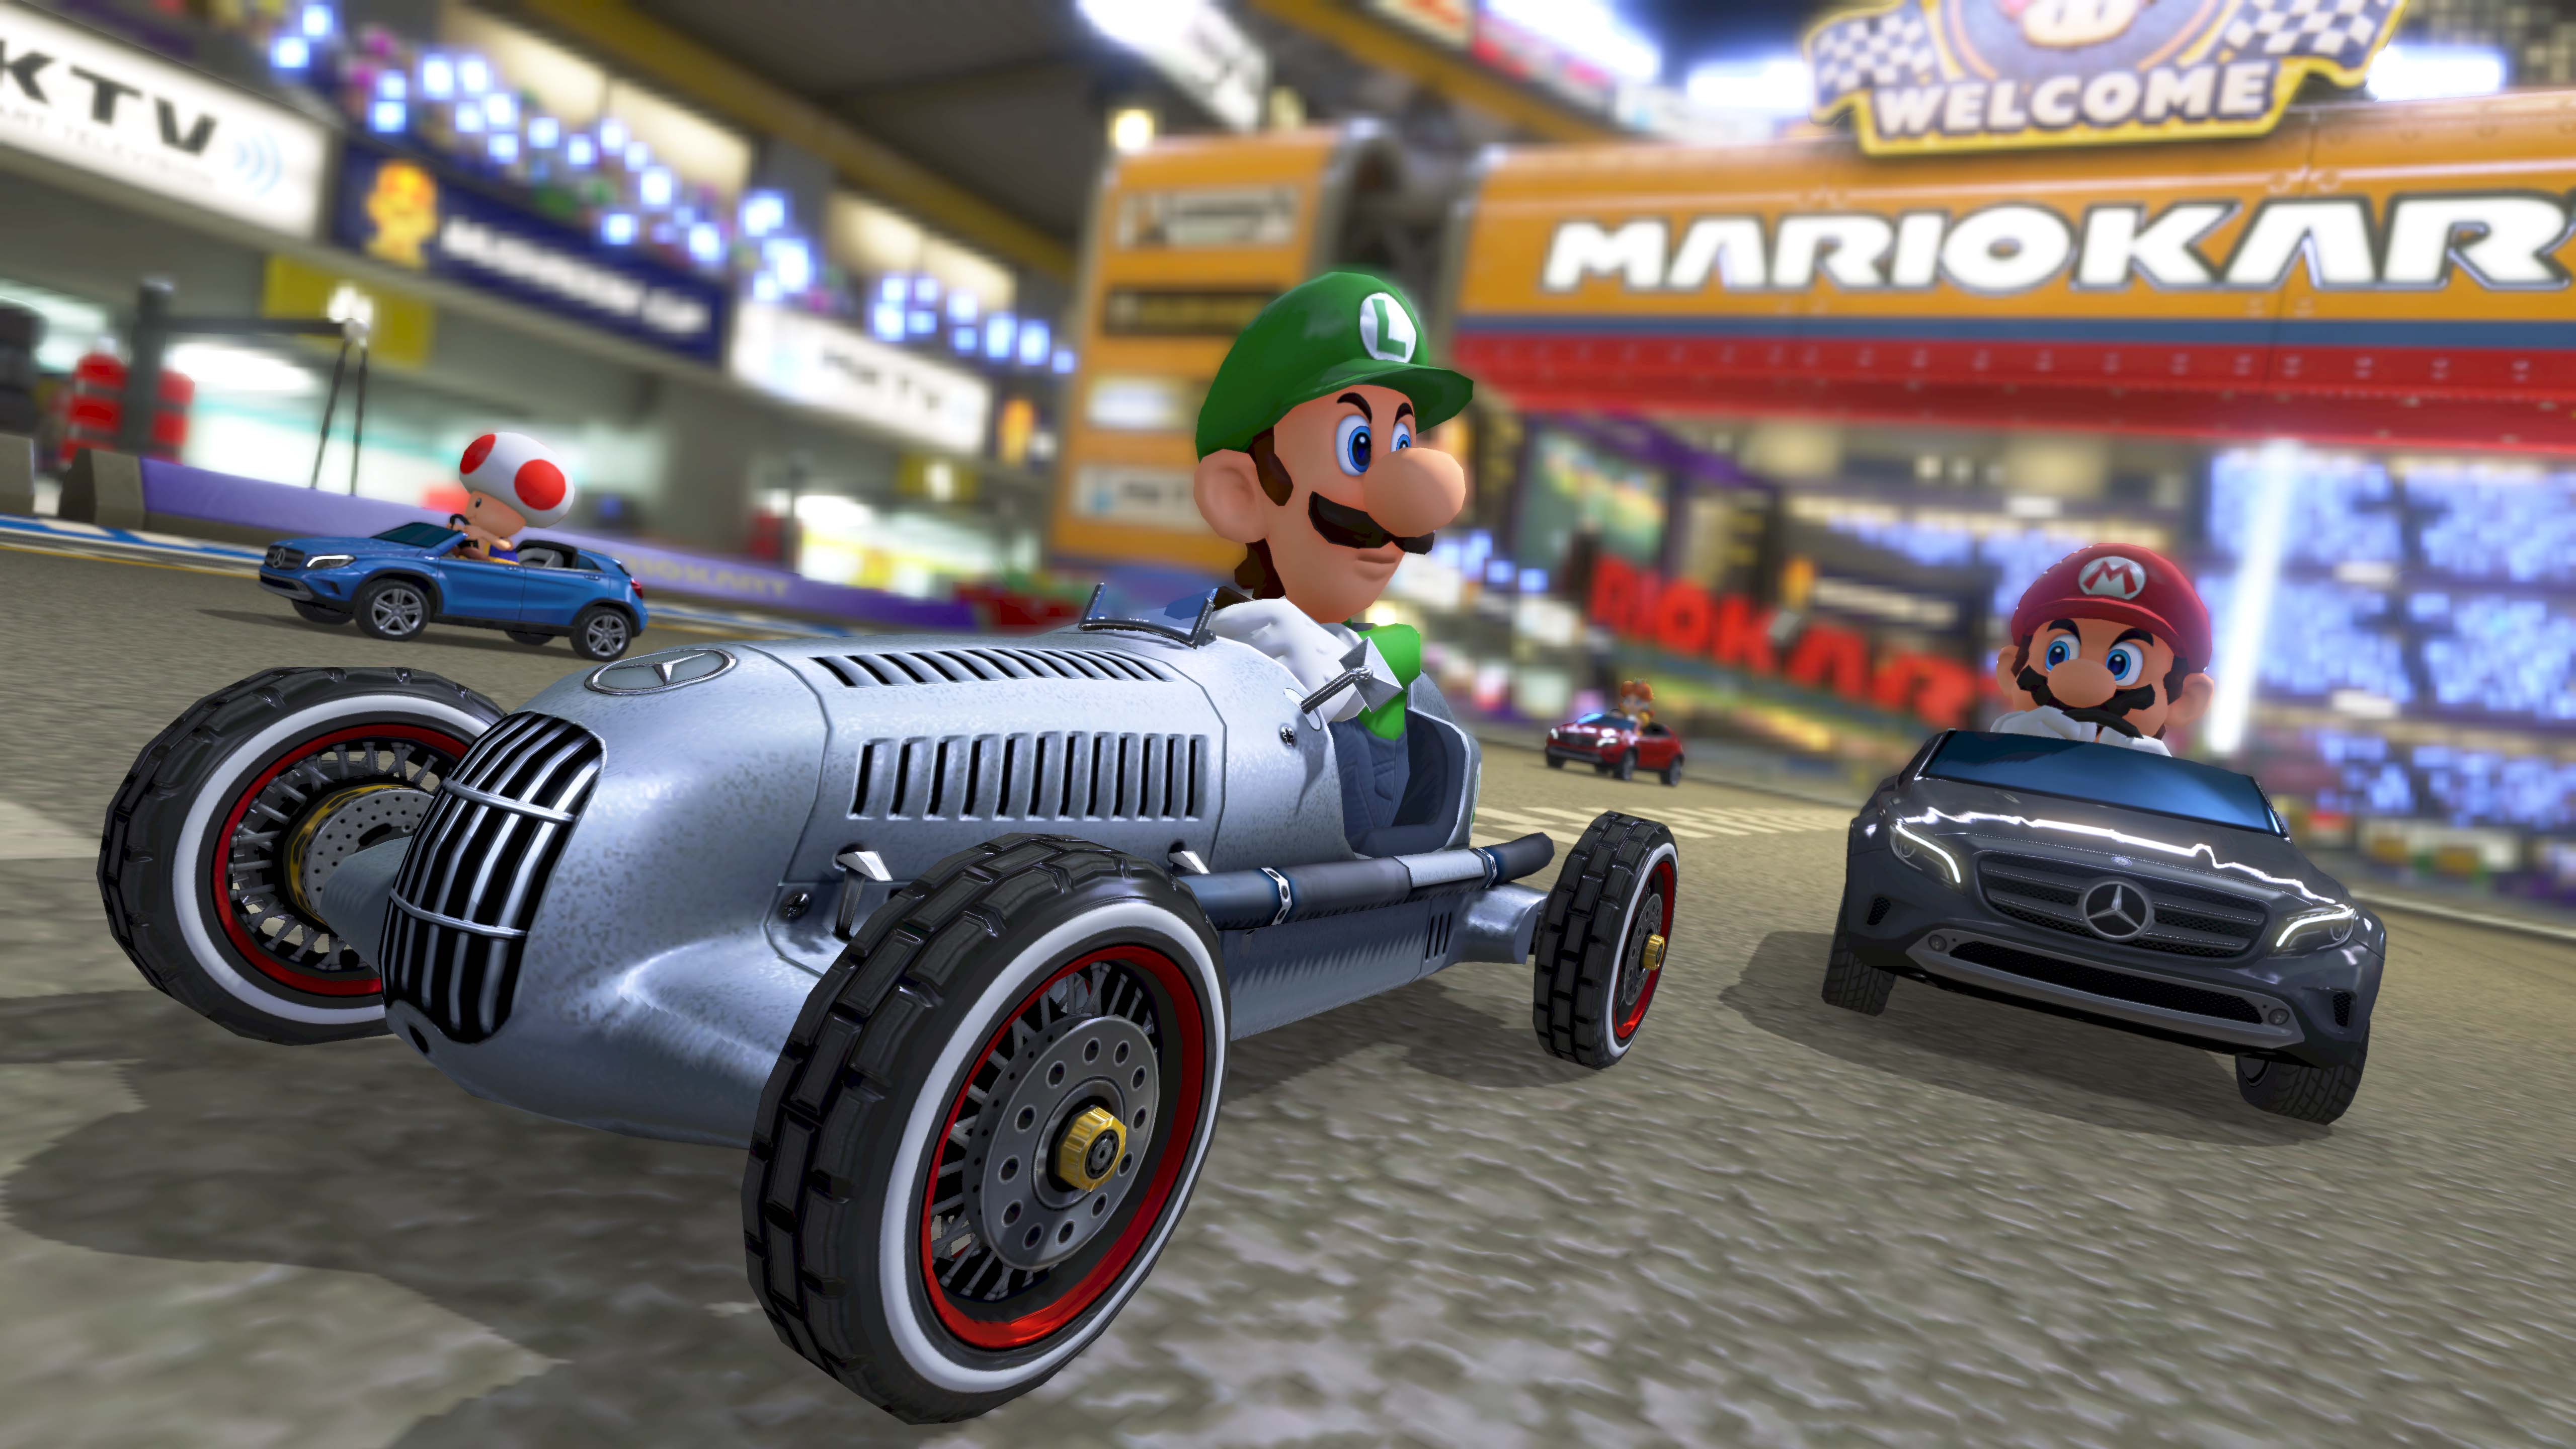 Nintendo adds three mercedes benz cars and updates to mario kart 8